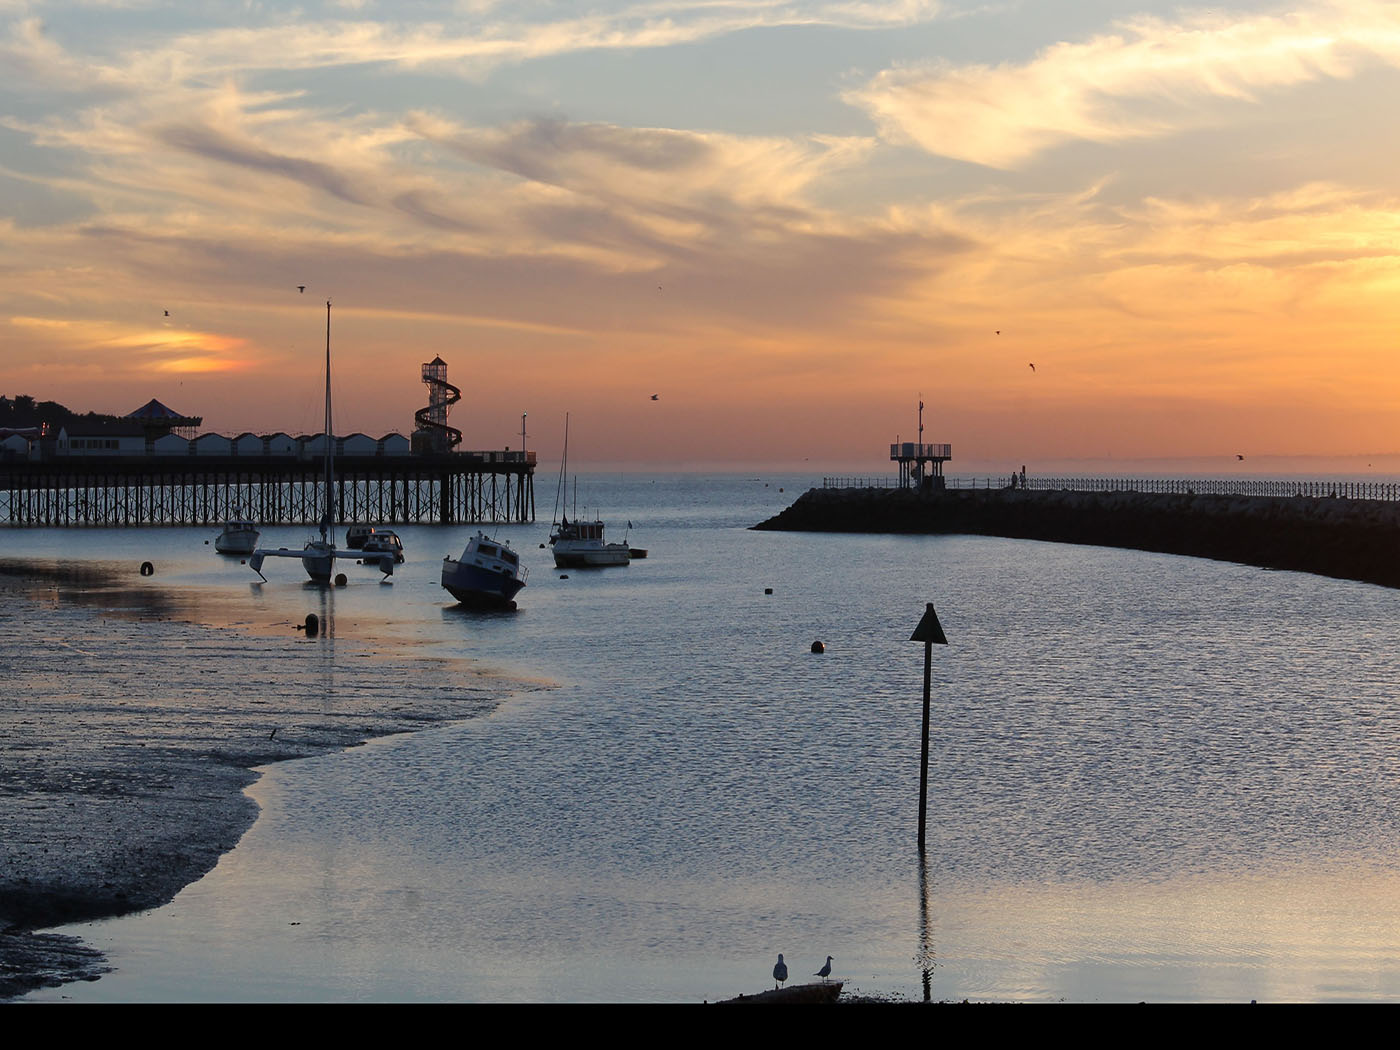 HERNE BAY AT SUNSET by kim read